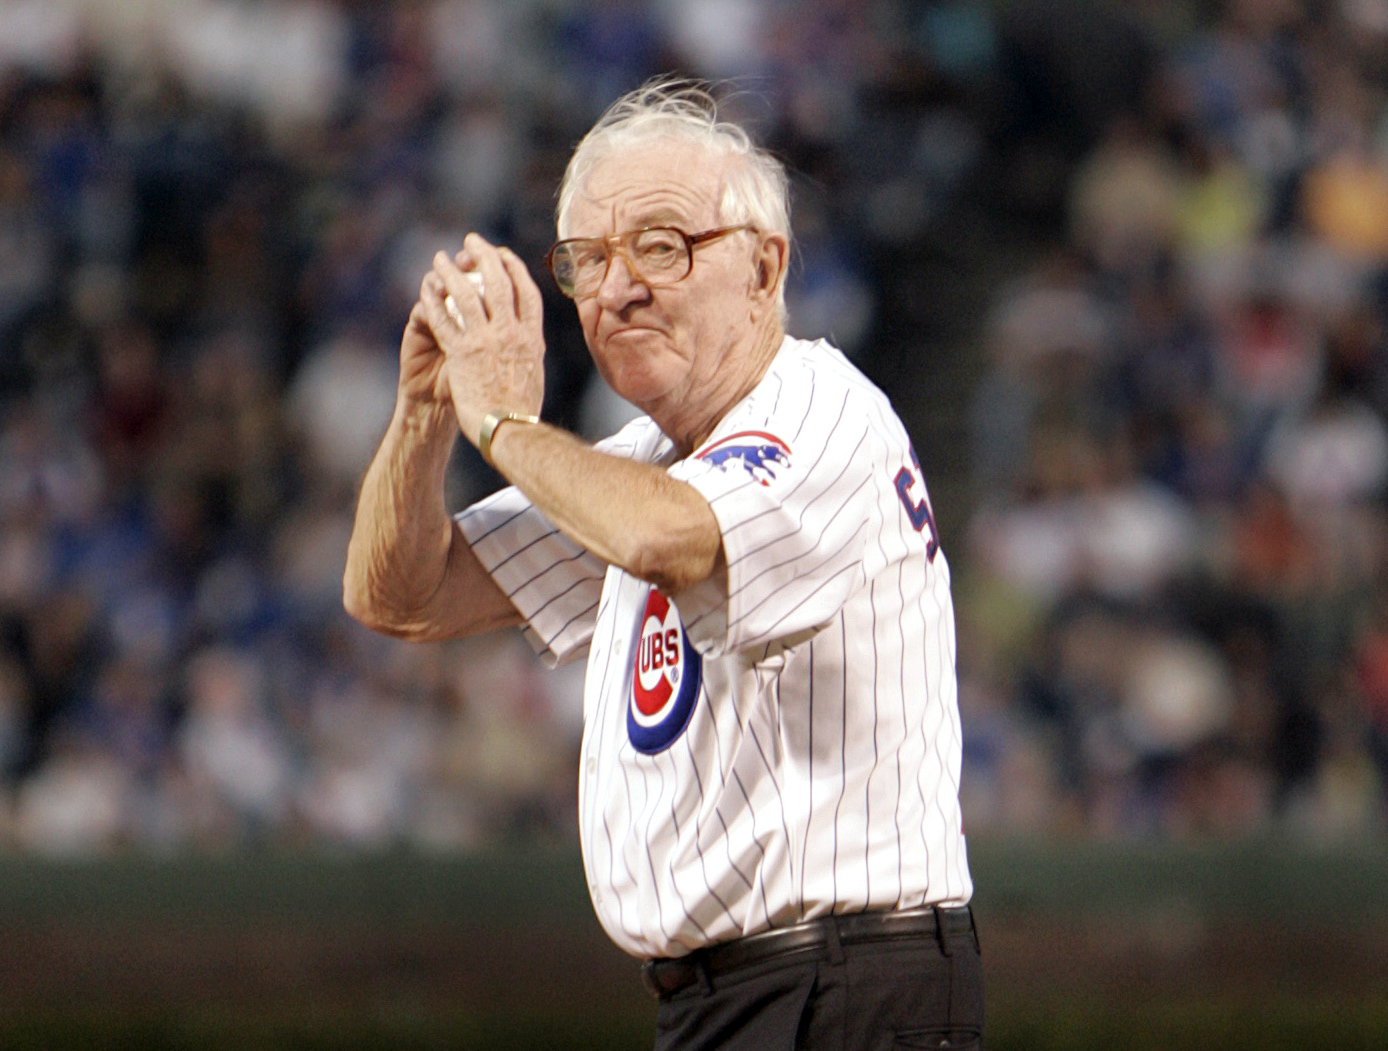 John Paul Stevens winds up to throw out the first pitch before the start of the Chicago Cubs game with the Cincinnati Reds, in Chicago, on Sept. 14, 2005.